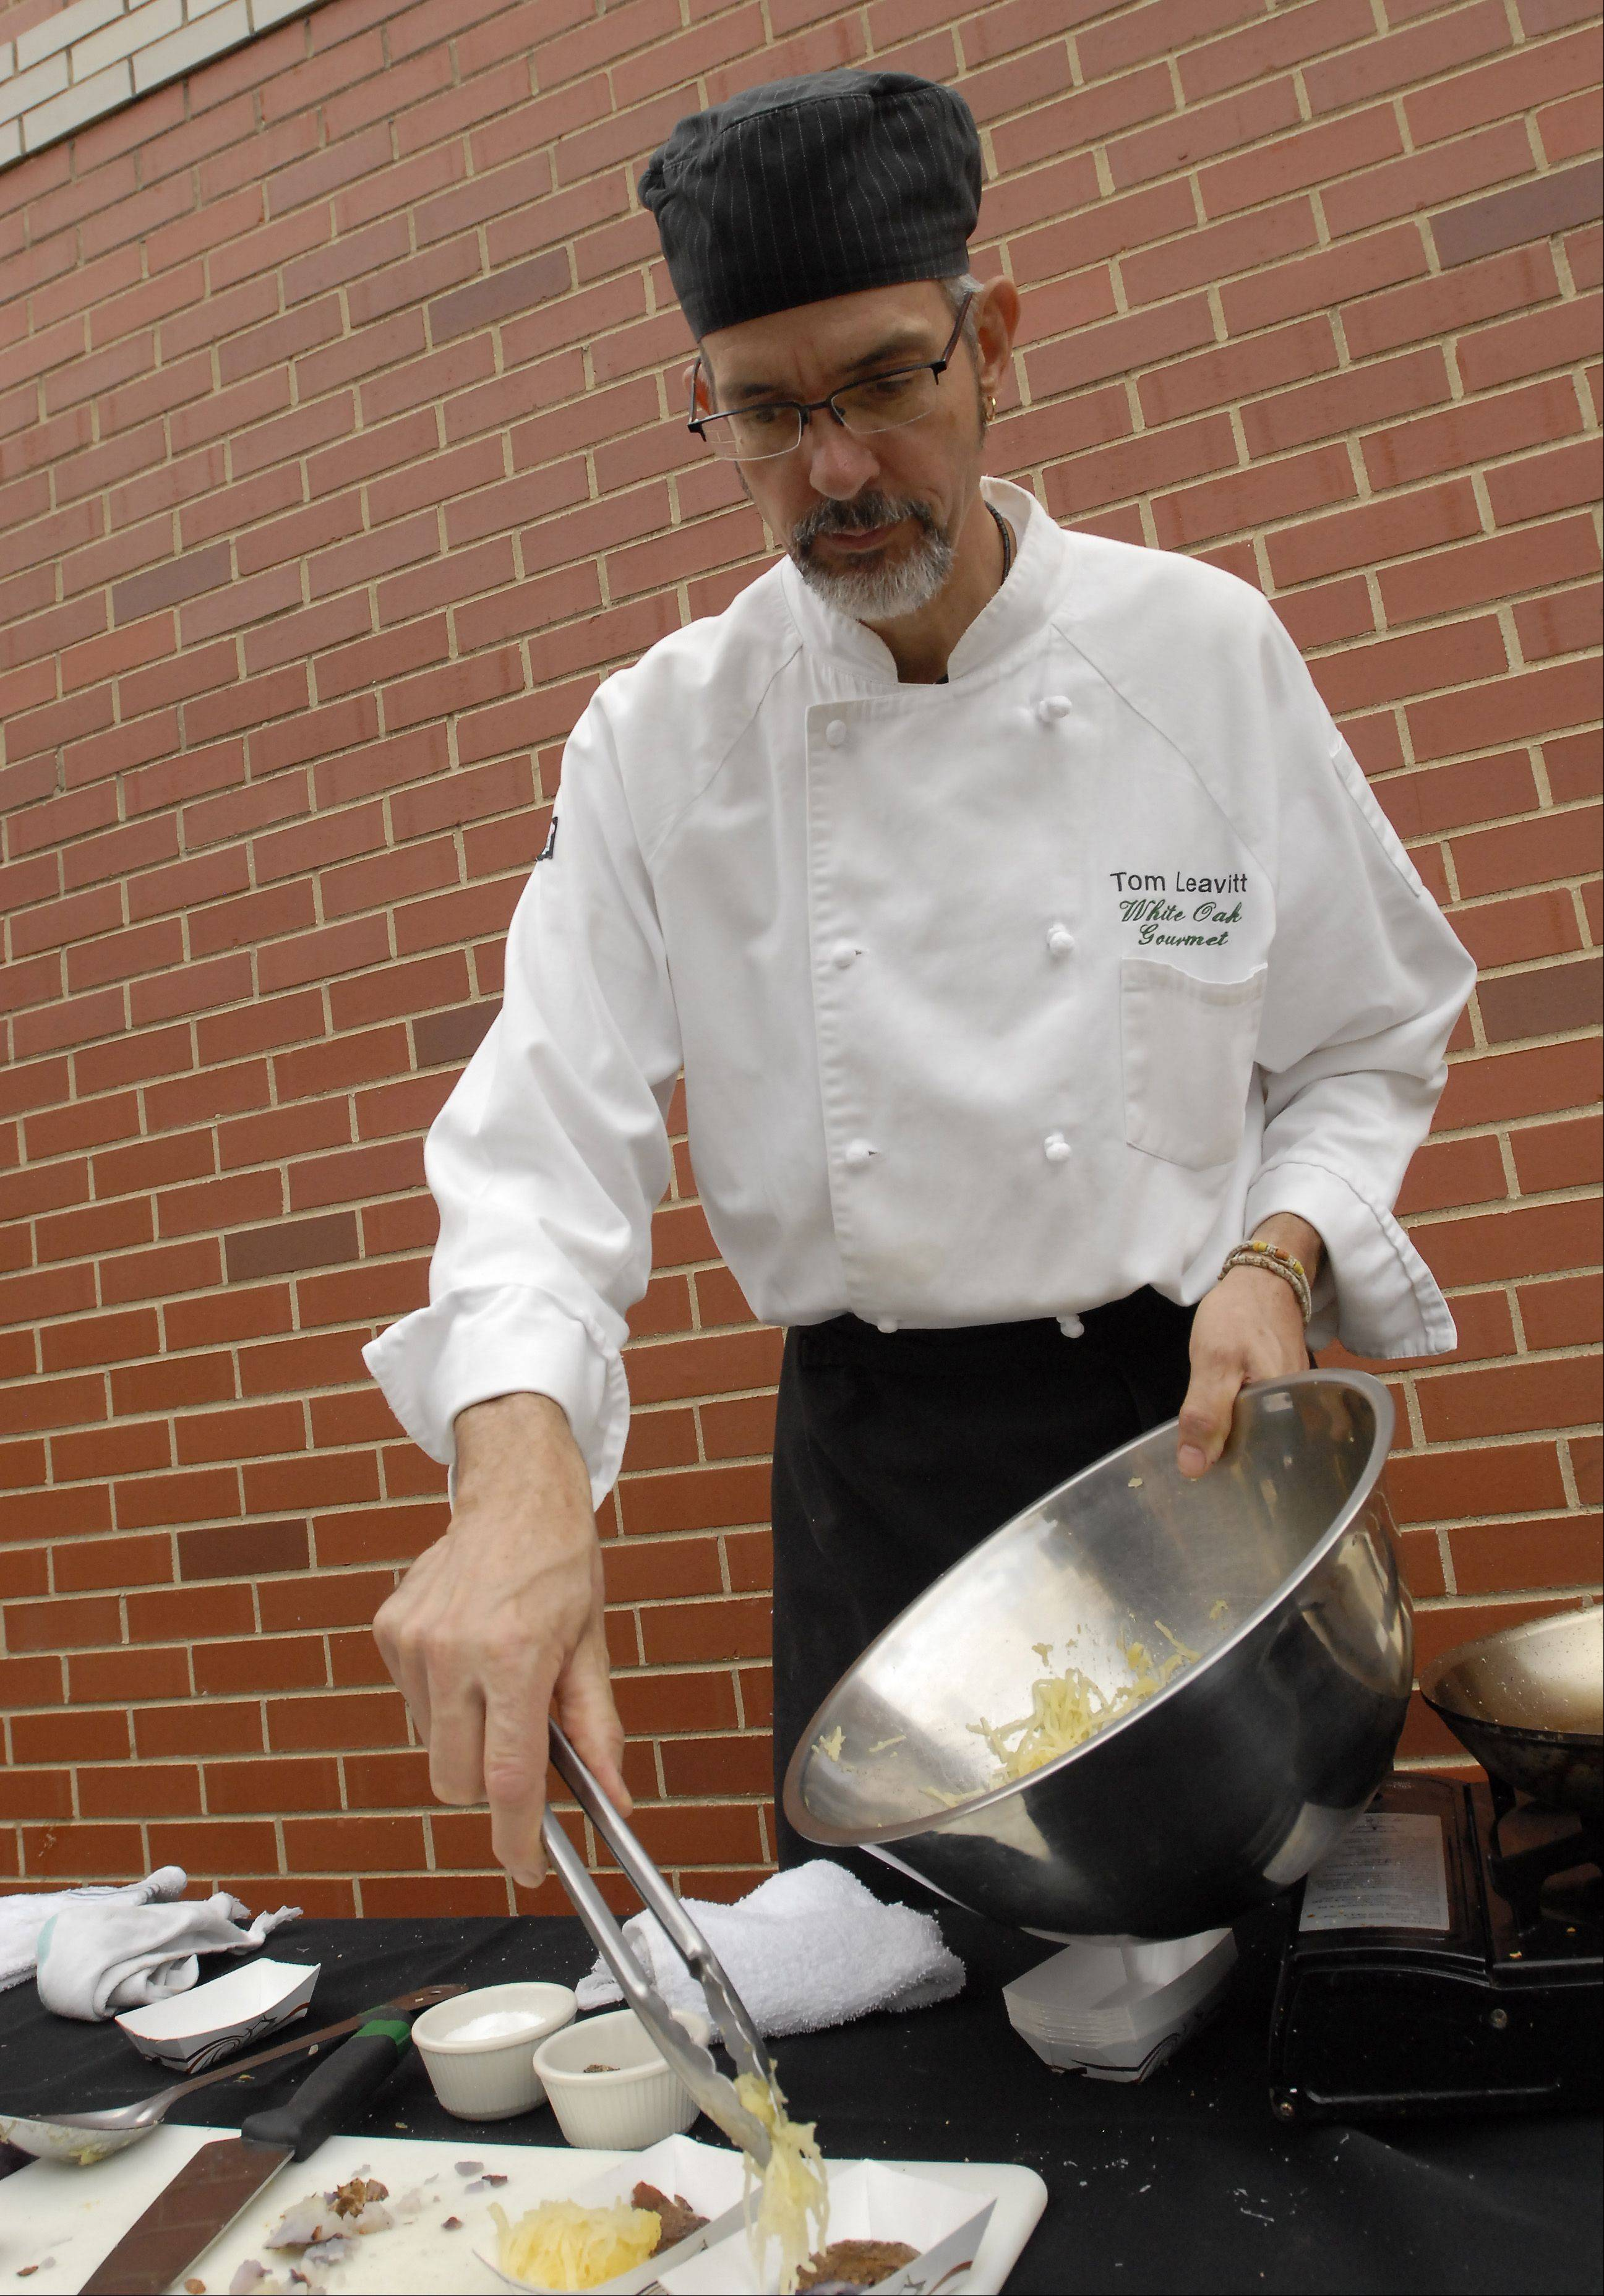 Chef Thomas Leavitt, owner of White Oak Gourmet personal chef service, prepares spaghetti squash with marinara sauce and smashed purple potatoes.